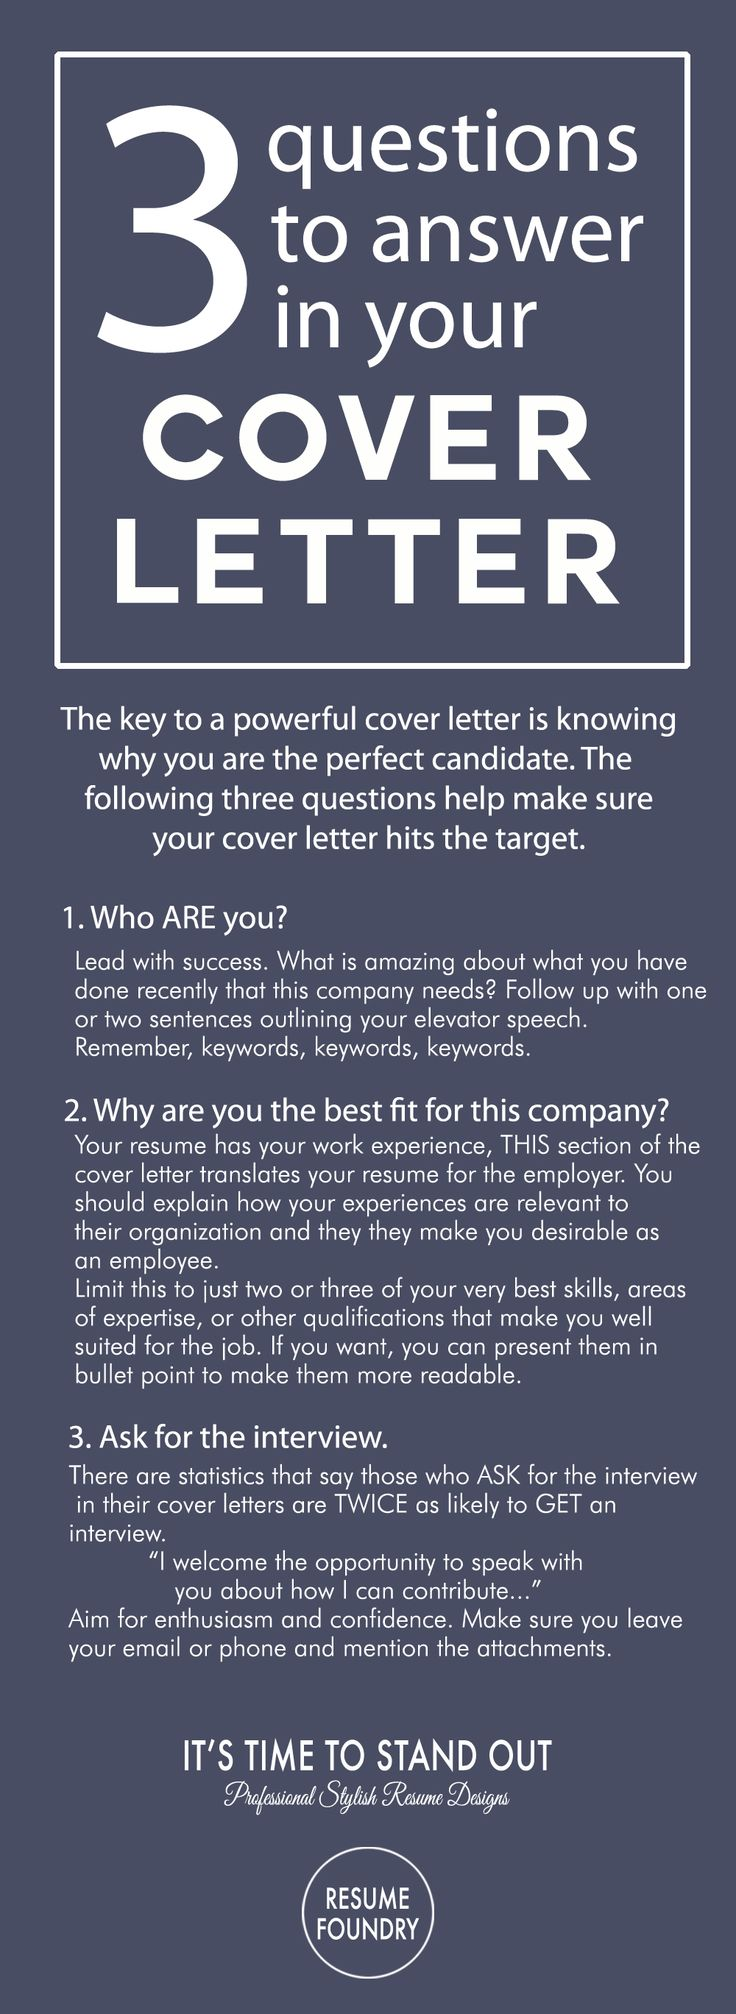 Best 25 cover letters ideas on pinterest cover letter tips cover letter tips outline how to write a cover letter madrichimfo Image collections